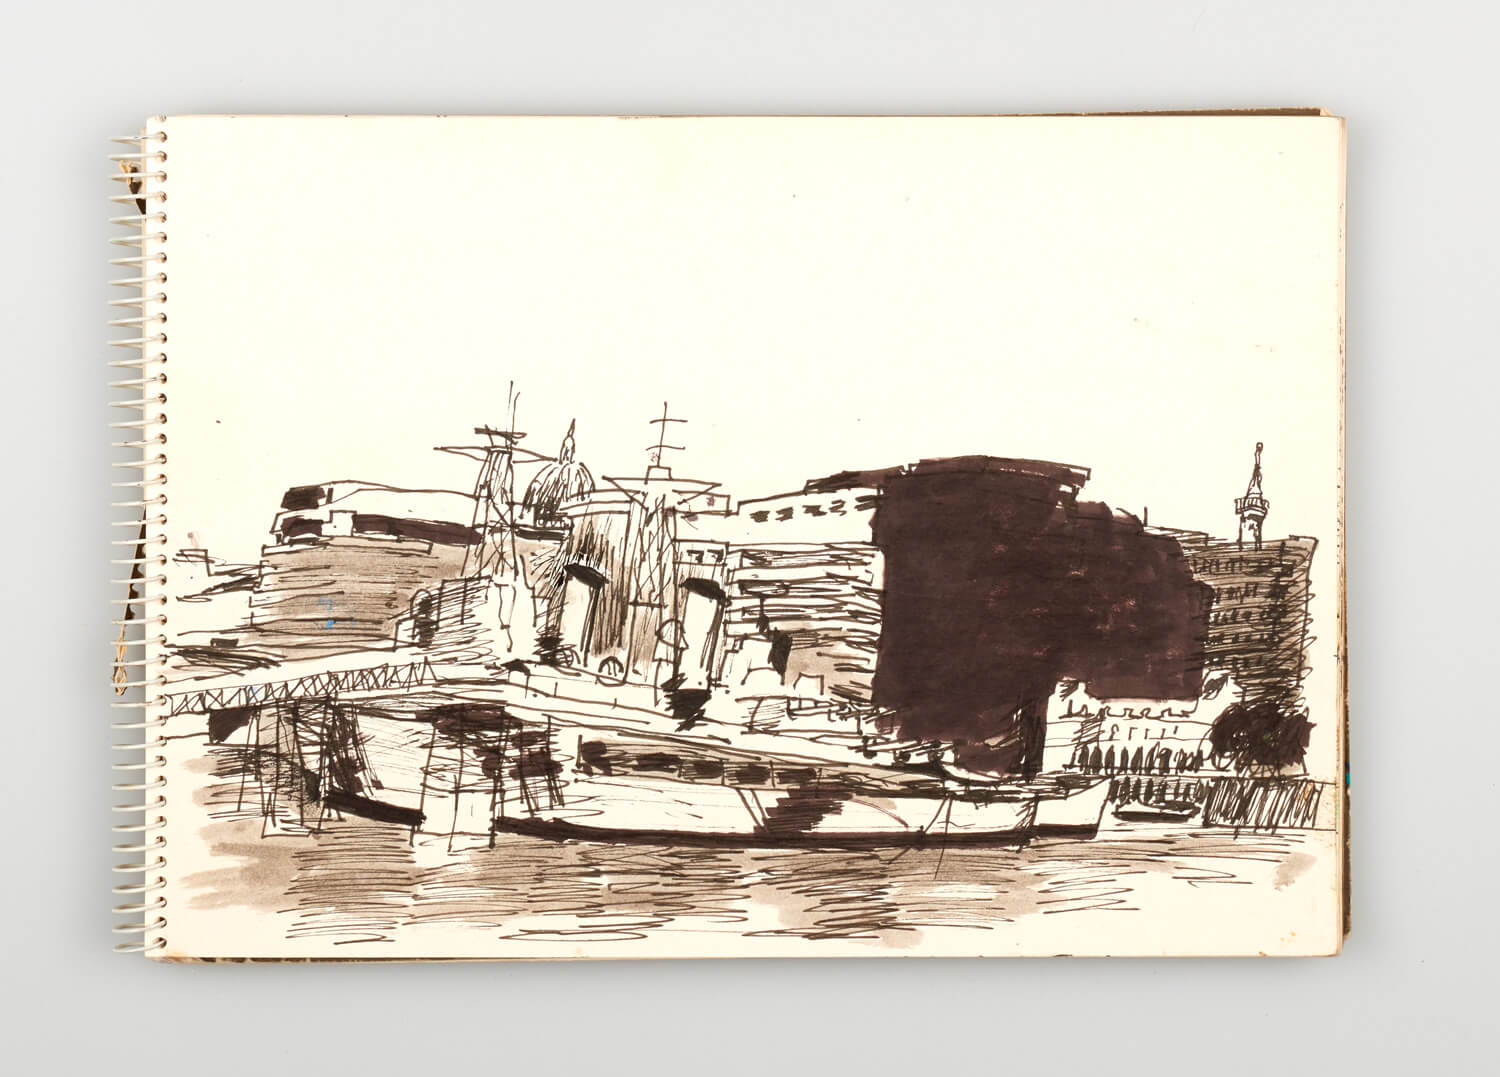 JB221 - Sketch for Bridges on the River Thames - 1992 - 21 x 30 cm - Pen and Ink on cartridge paper